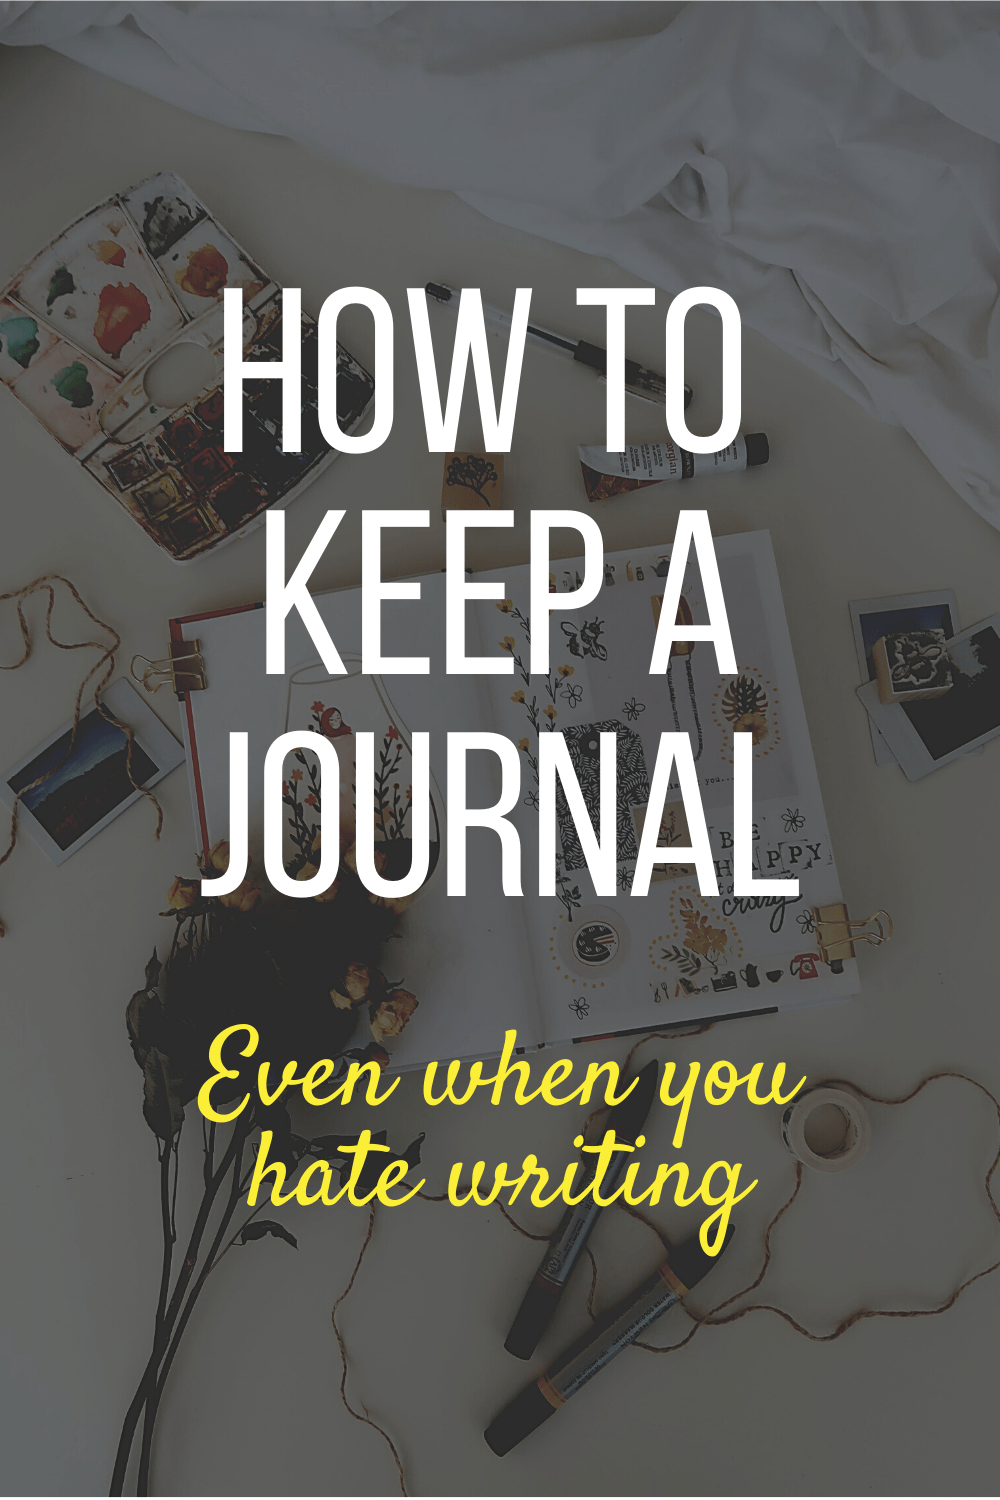 Find out how to journal without writing - because even if you hate writing you should still be able to benefit from journaling!